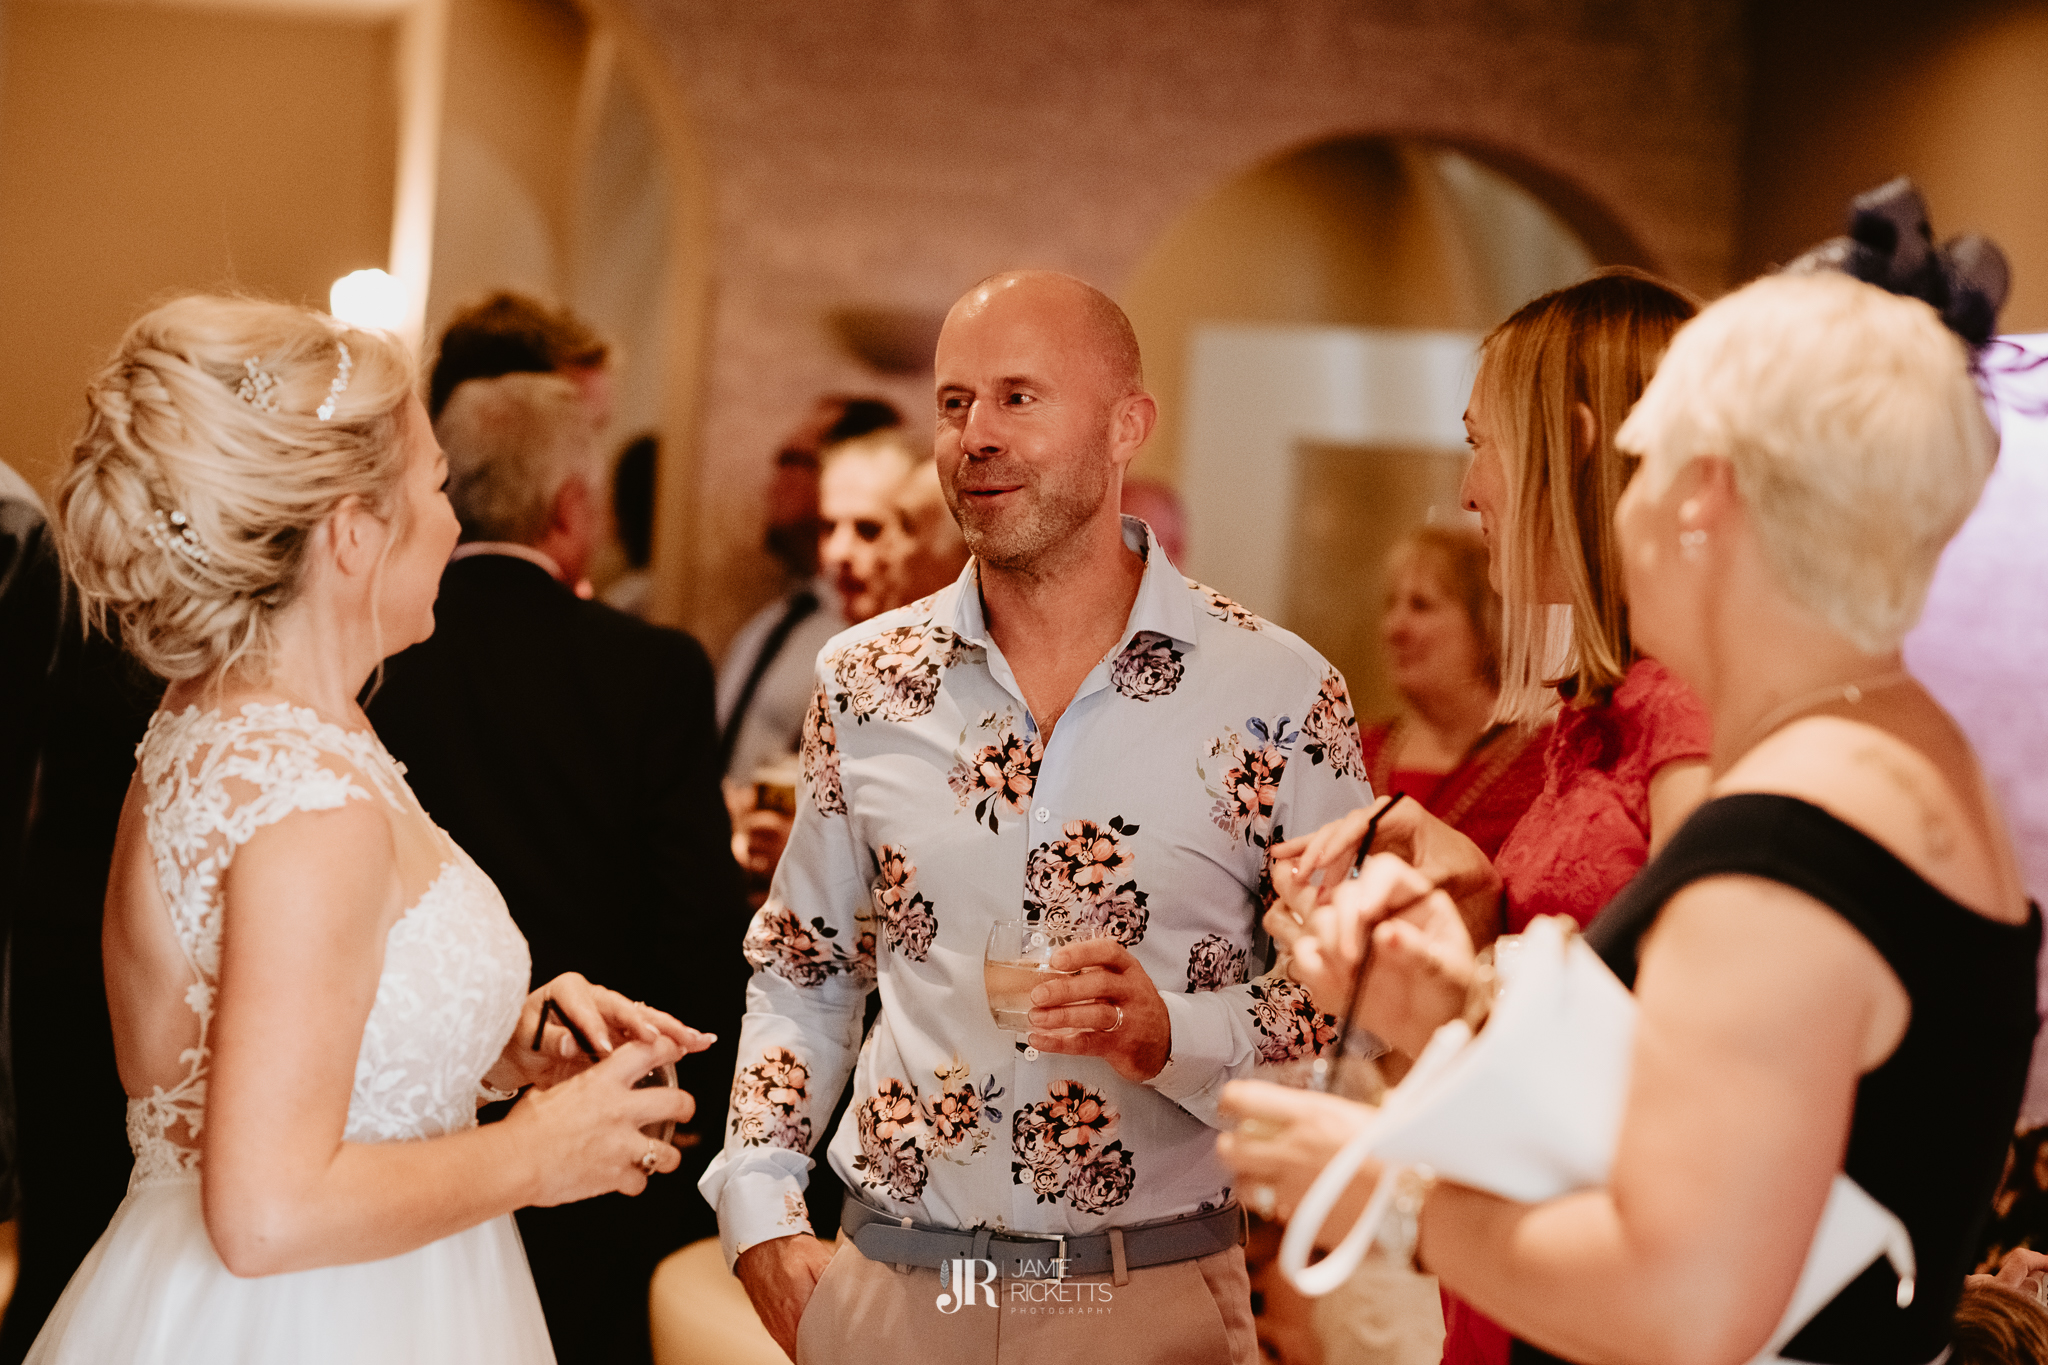 Wroxeter-Hotel-Wedding-Photography-In-Shropshire-By-Shropshire-Wedding-Photographer-Jamie-Ricketts-091.JPG